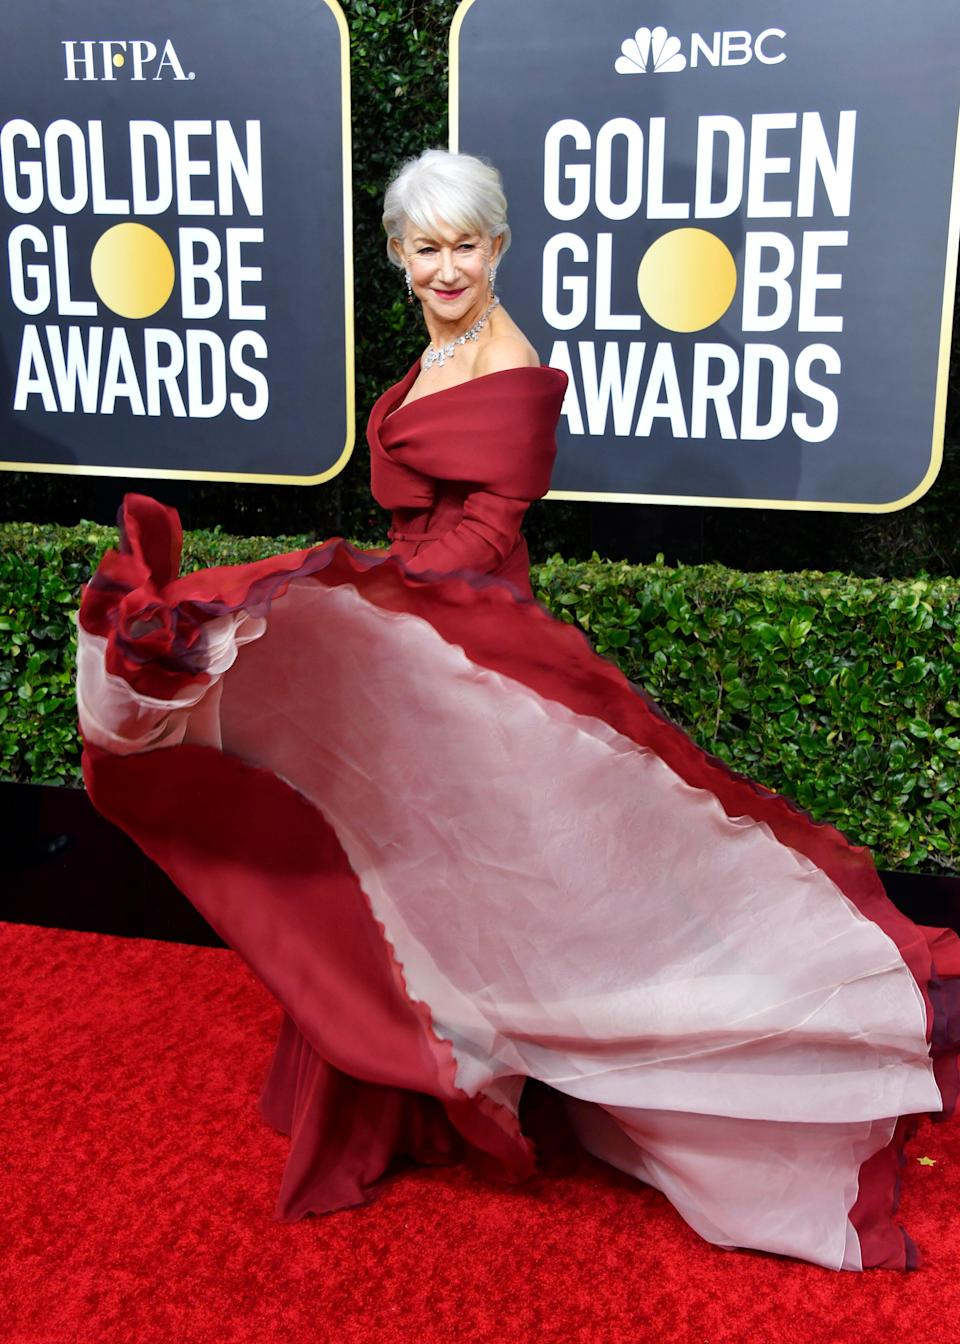 Bless Helen Mirren for bringing the💃emoji to life.